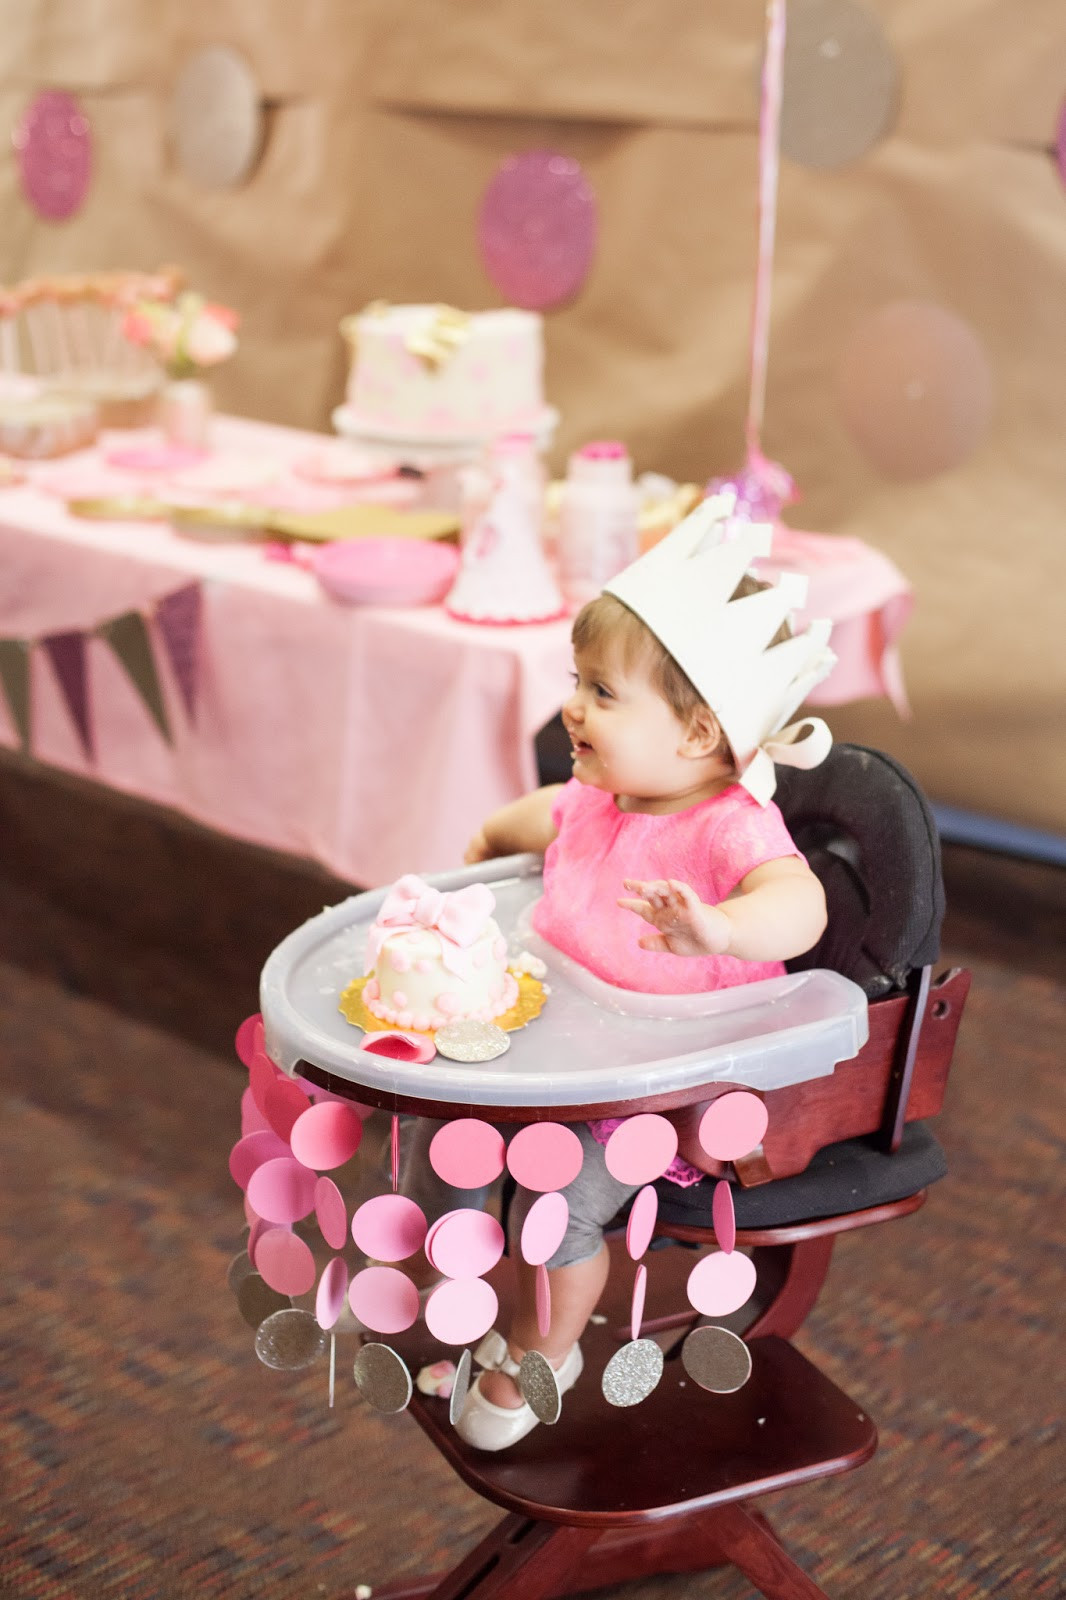 Best ideas about Baby First Birthday Decorations . Save or Pin Nat your average girl 1st birthday party decor Now.